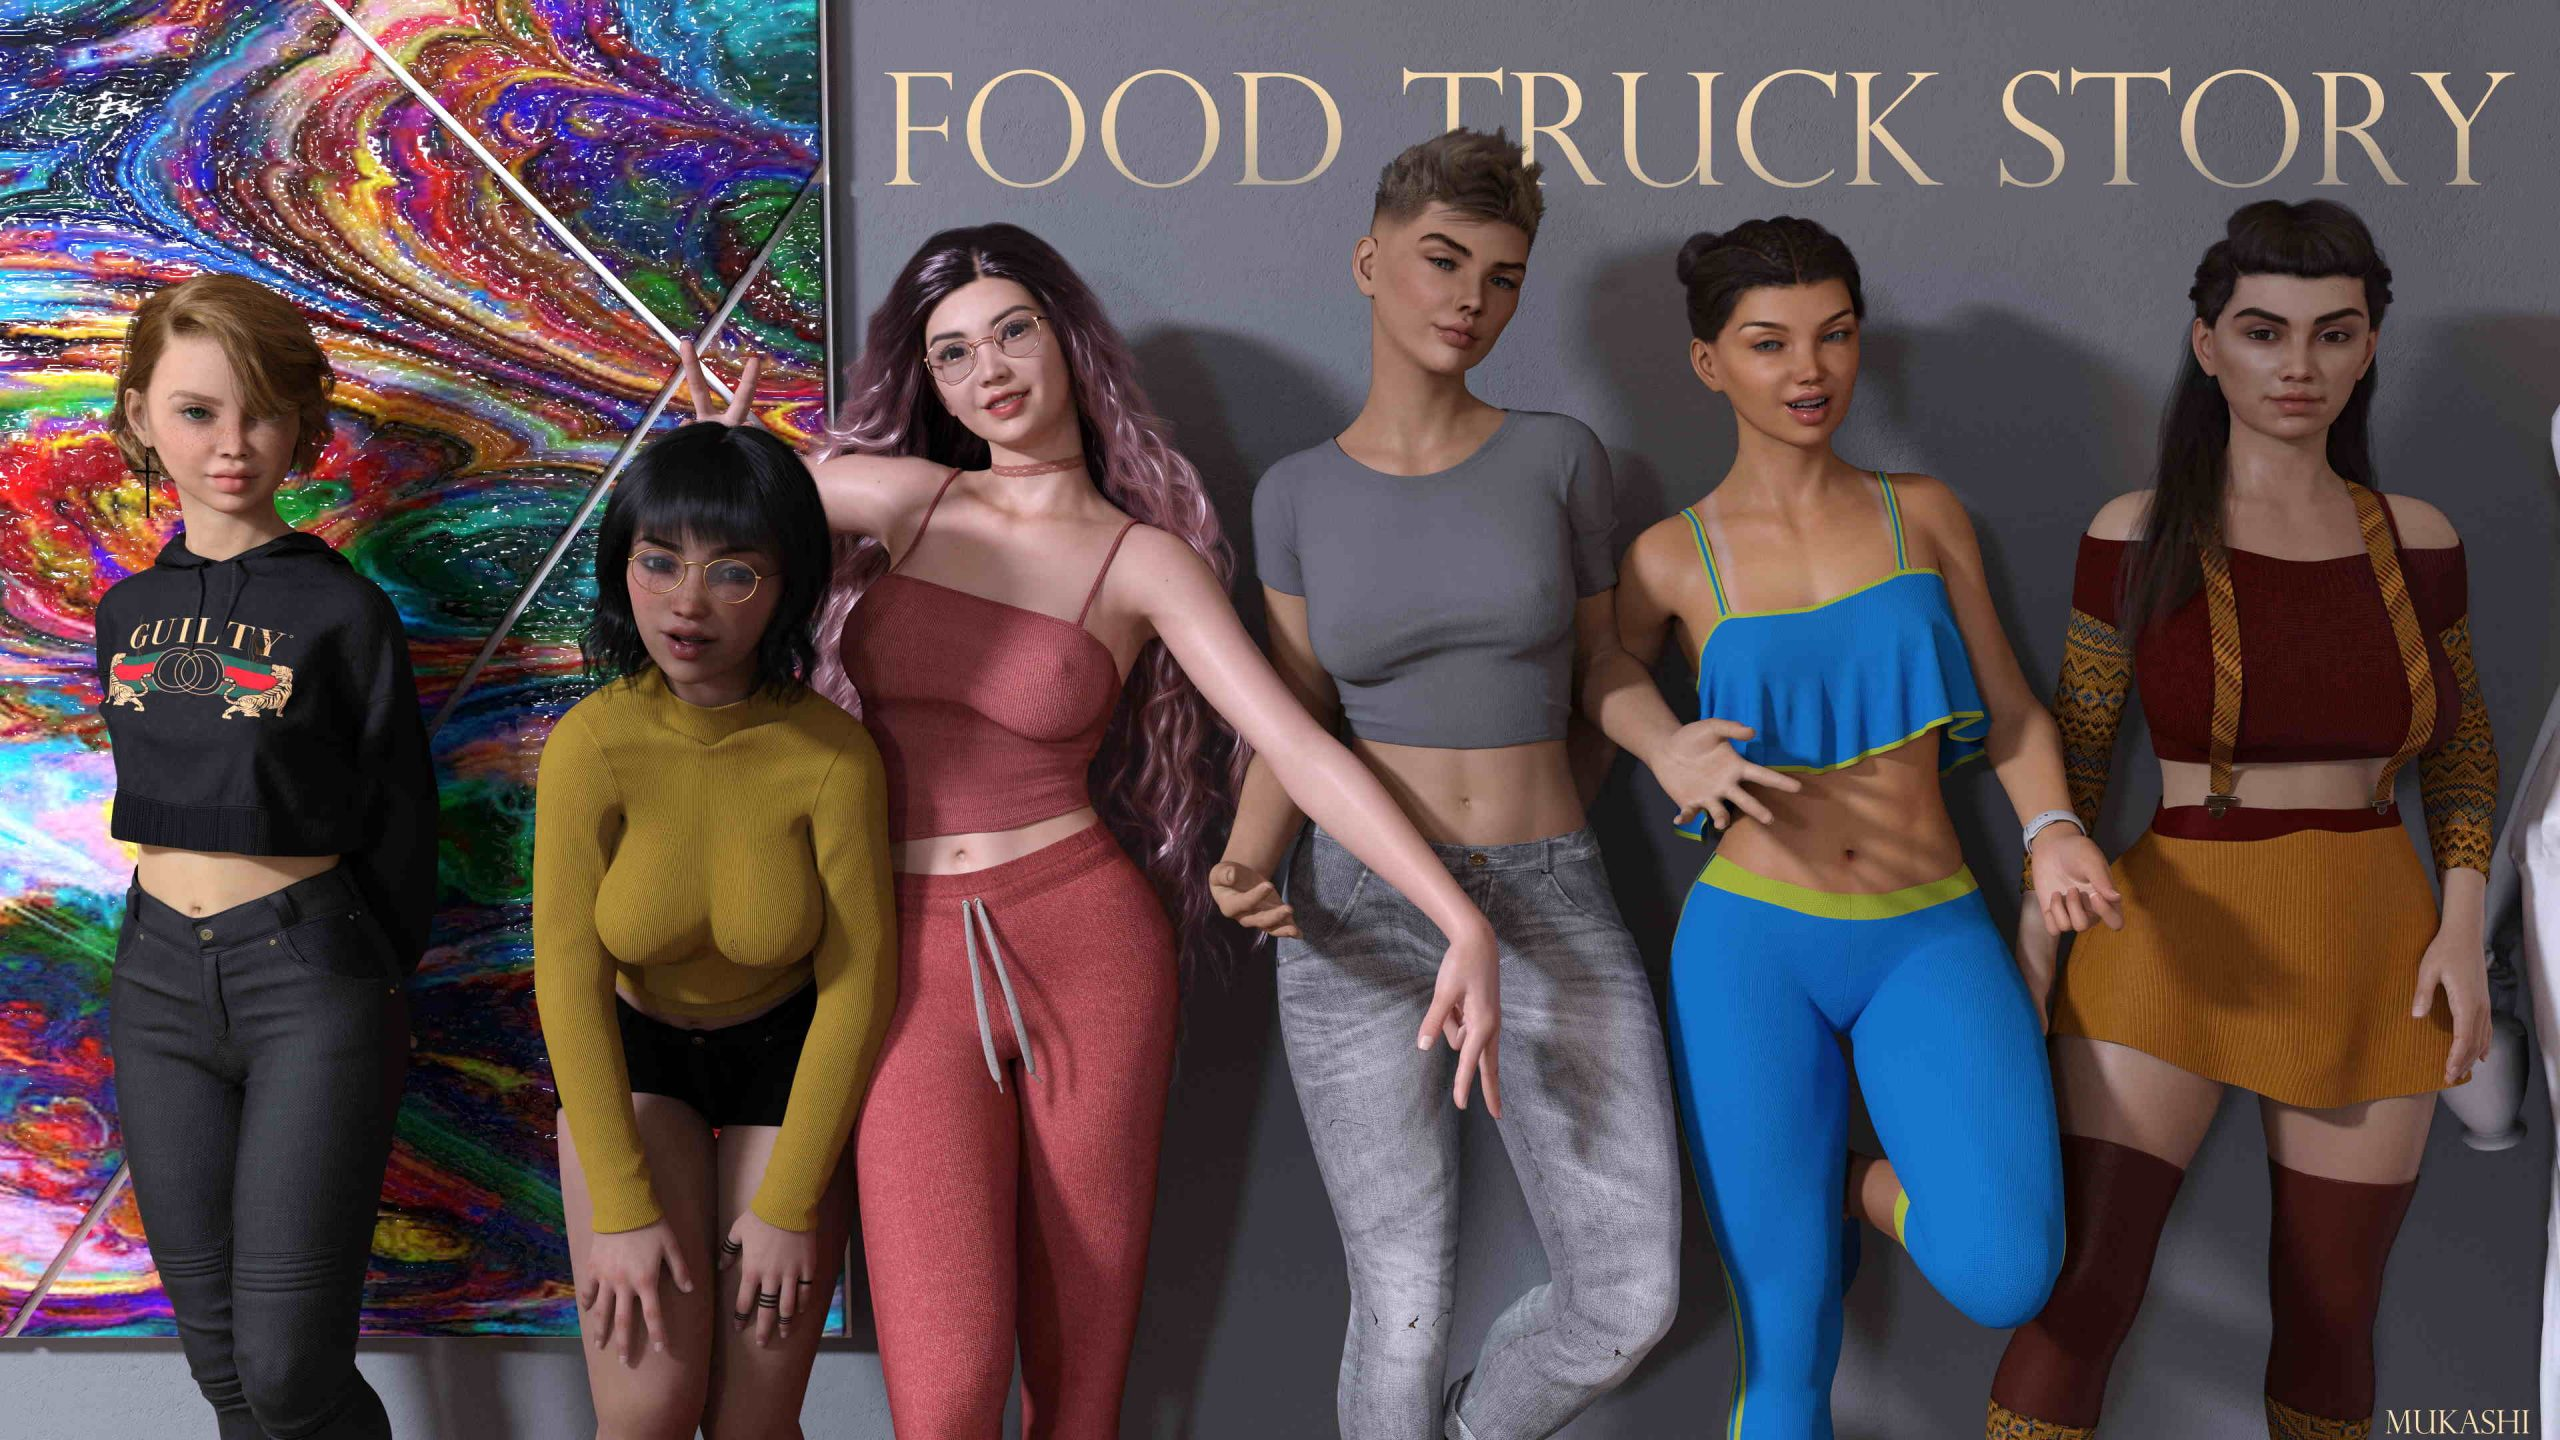 Food Truck Story